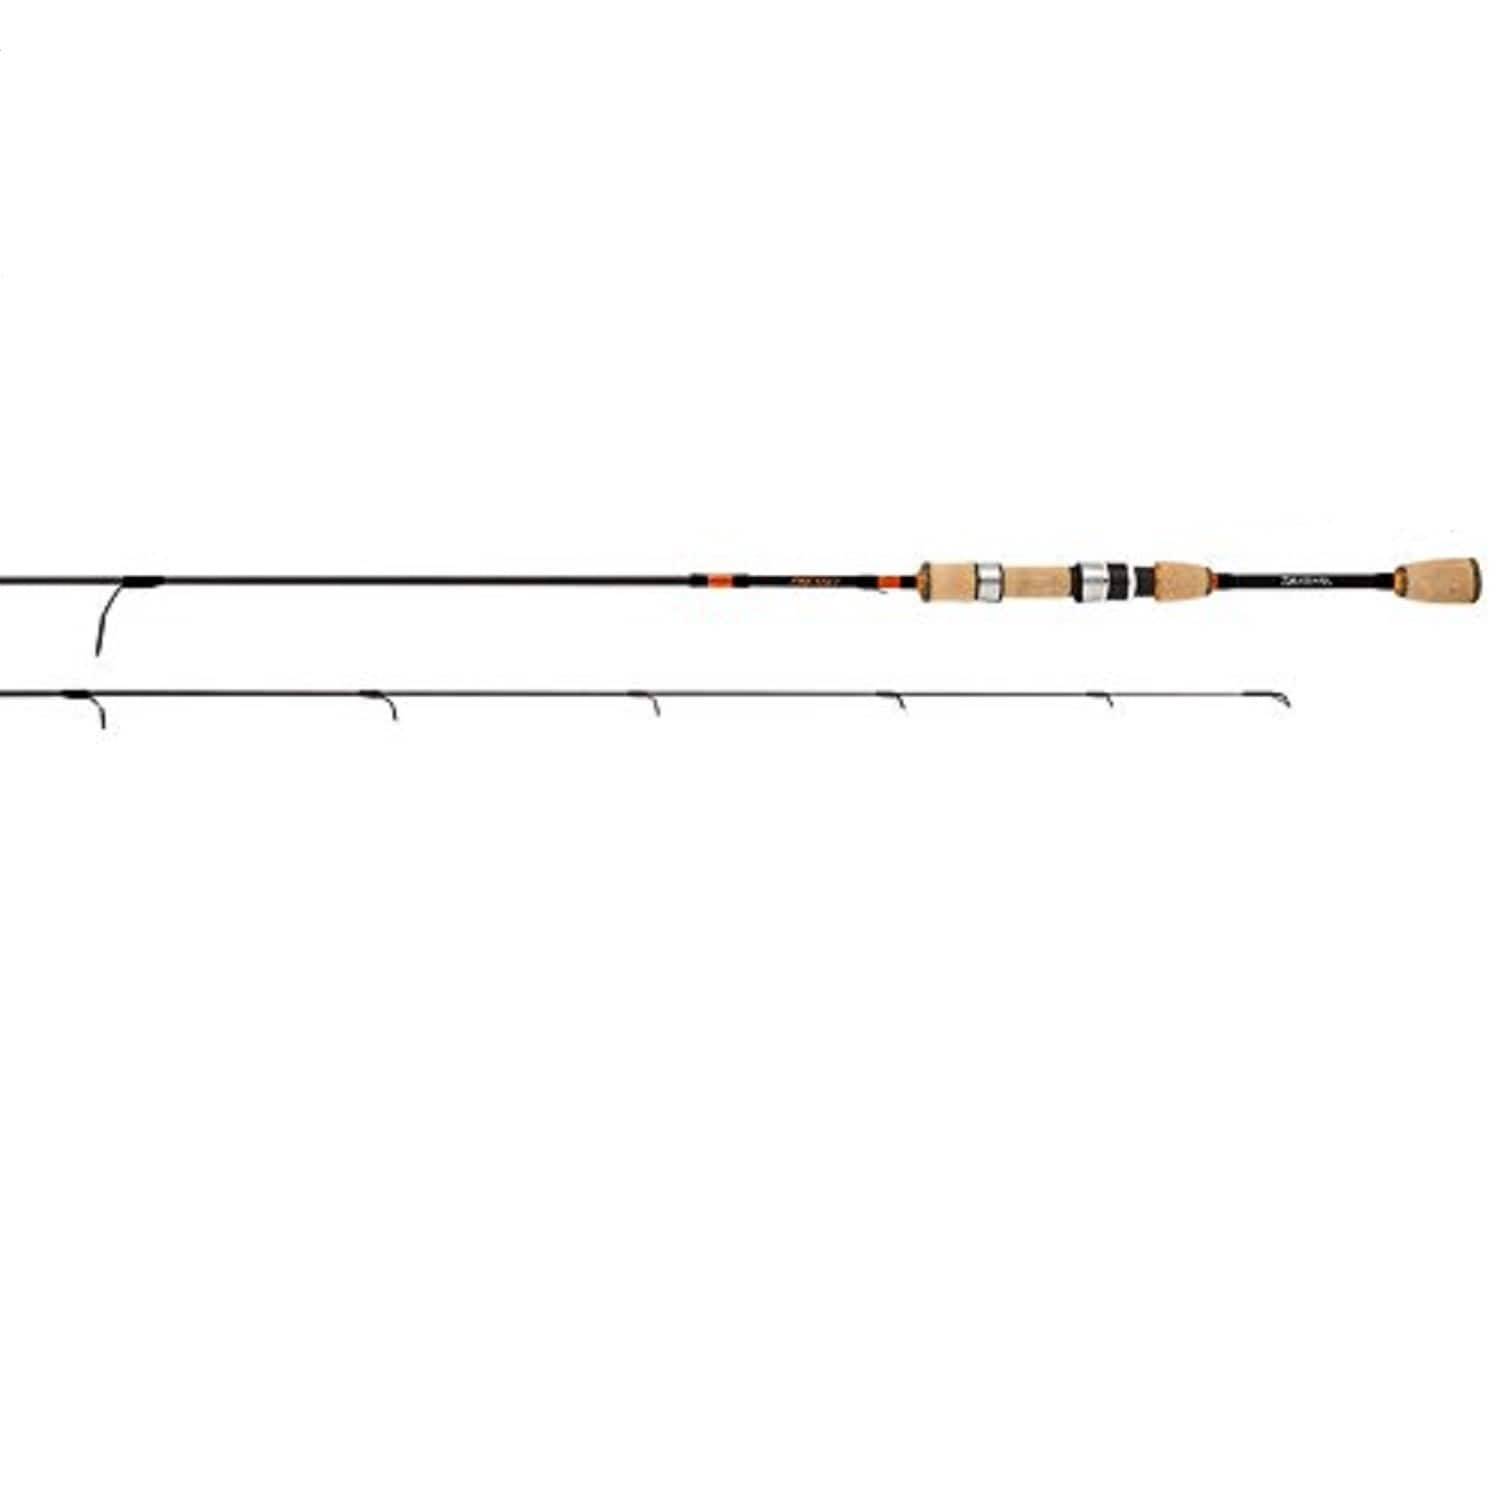 Daiwa Presso Ul Spin Rod 2 Pieces Line Wt 2 6 Pso802ulfs Grey Spinning Rods Fishing Rods For Sale Boat Rods